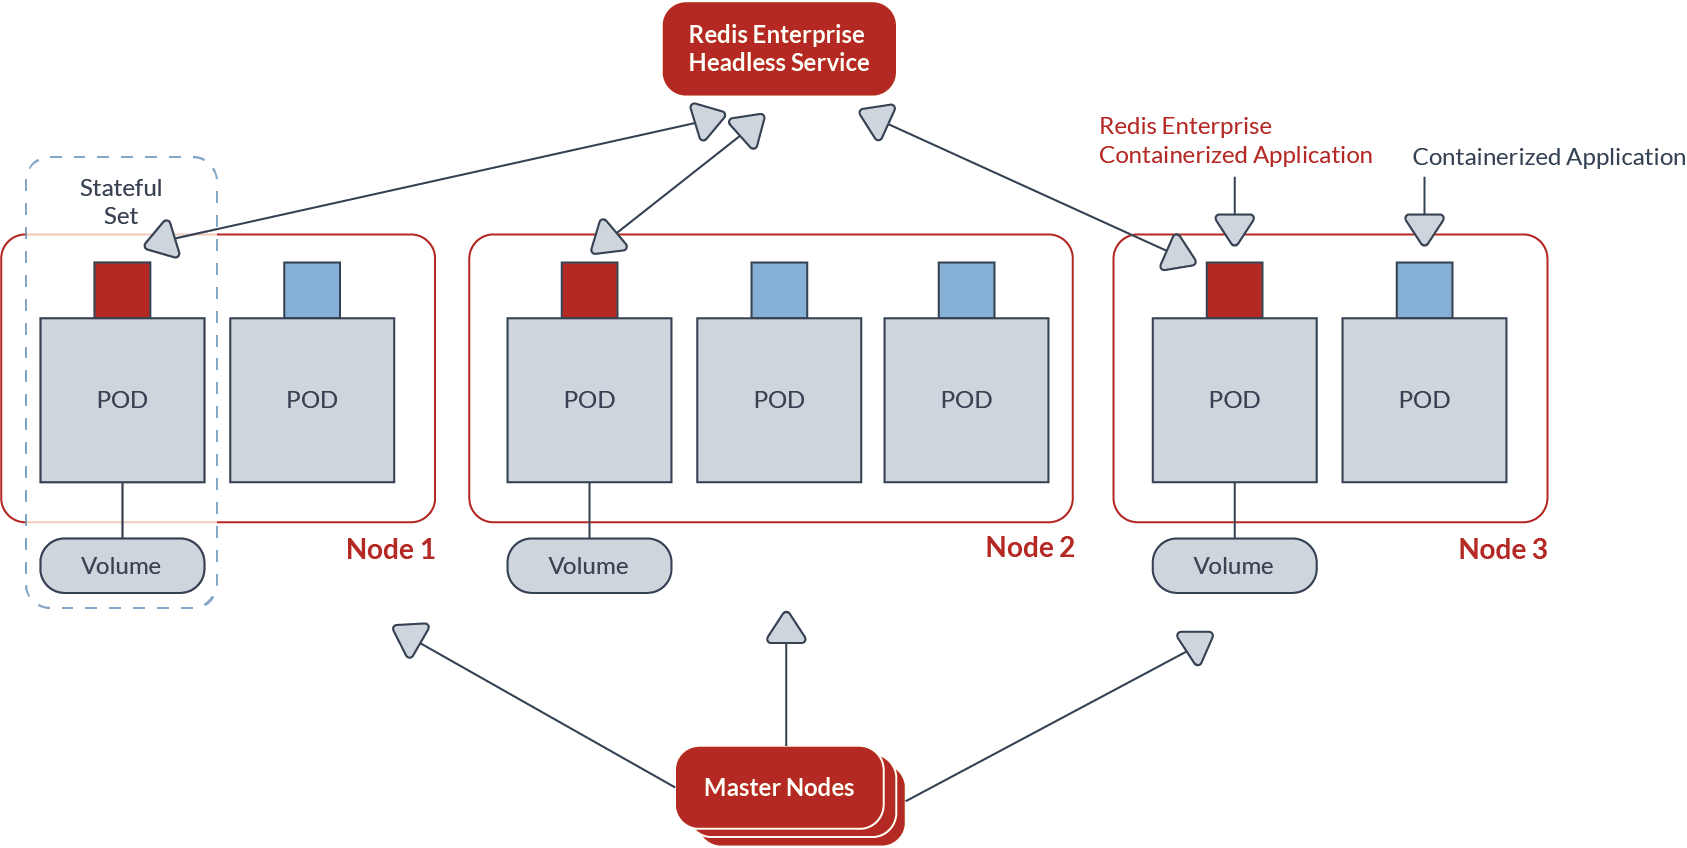 Redis Enterprise Headless Service